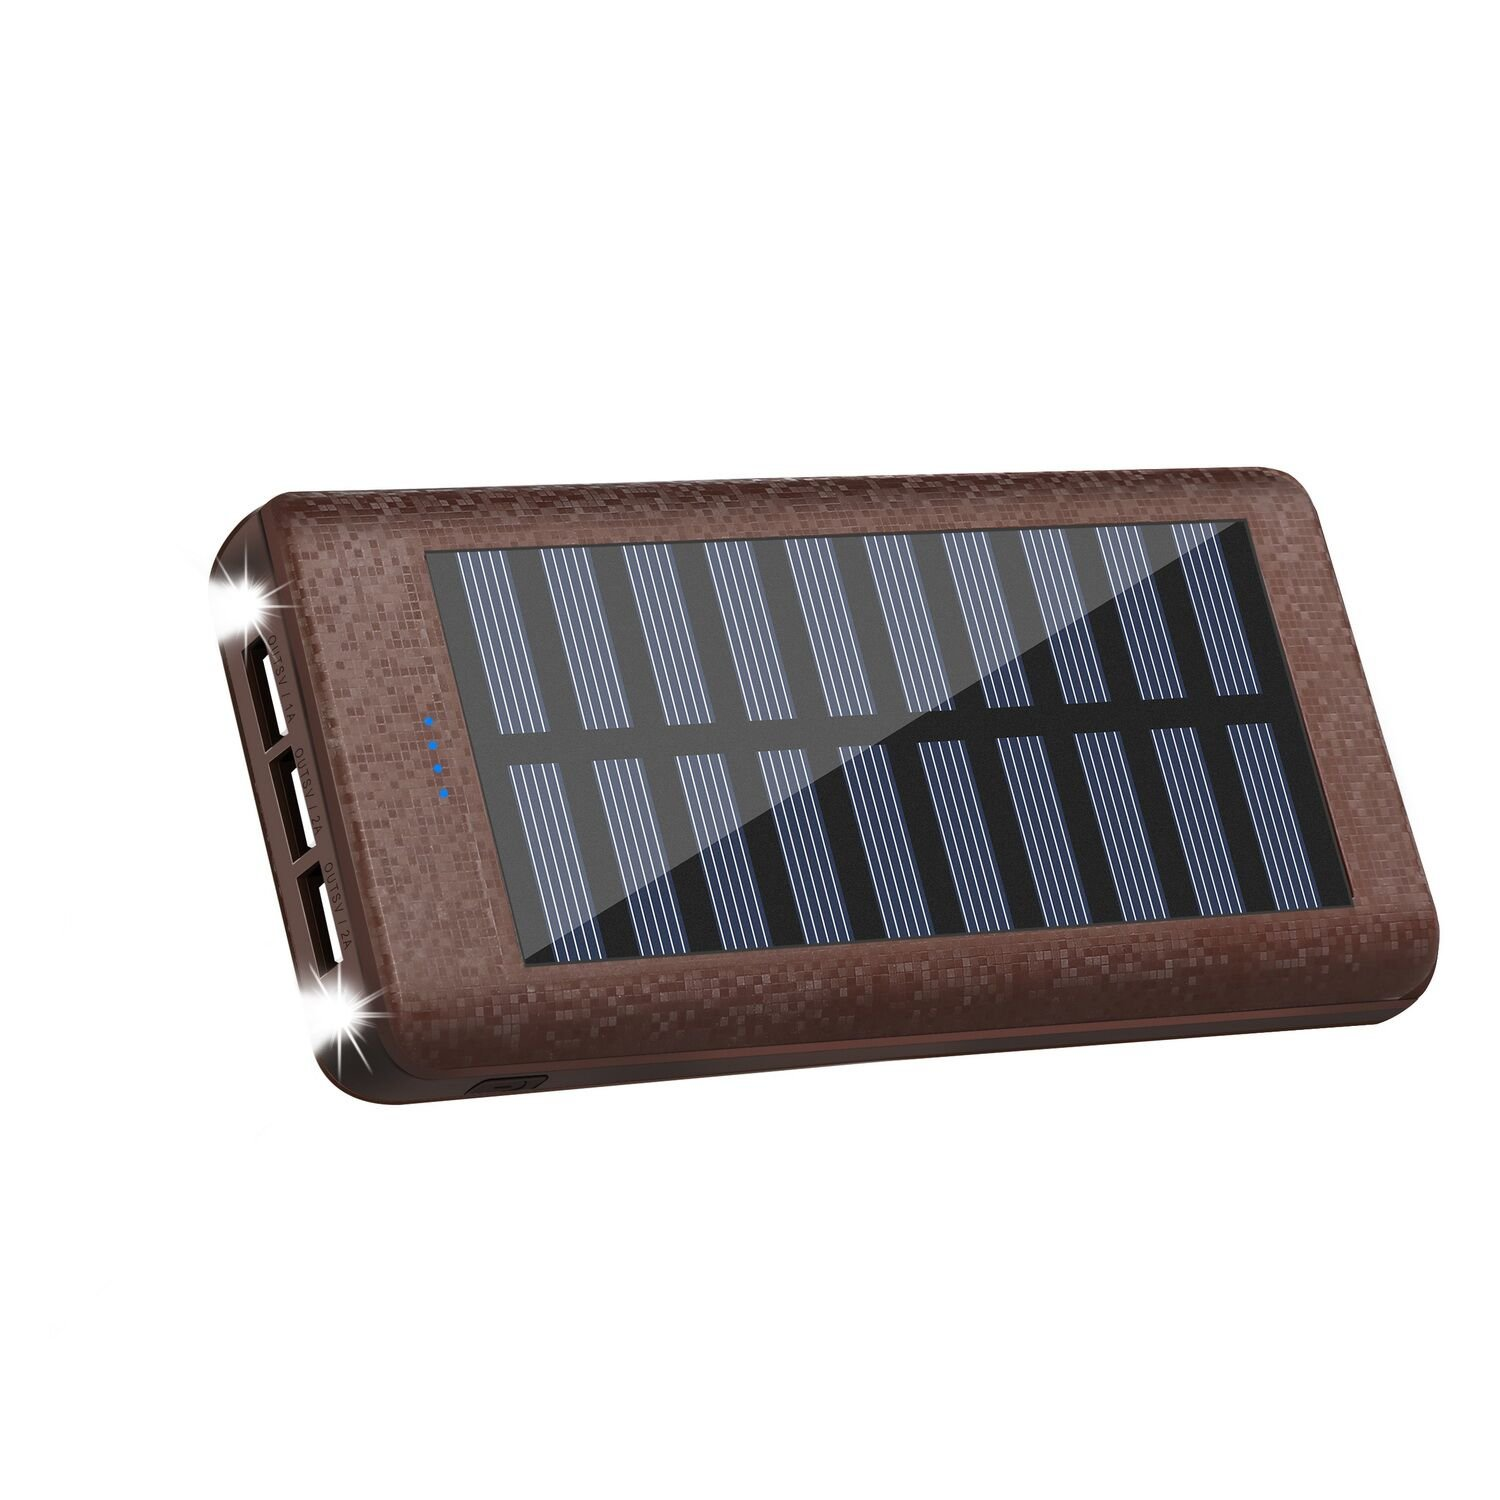 Solar Charger Power Bank 24000mah Huge Capacity Portable Charger 3 Output Ports (2A+2A+1A) Backup Battery Pack for Samsung Smart Cellphones Tablet and More Rolisa C1